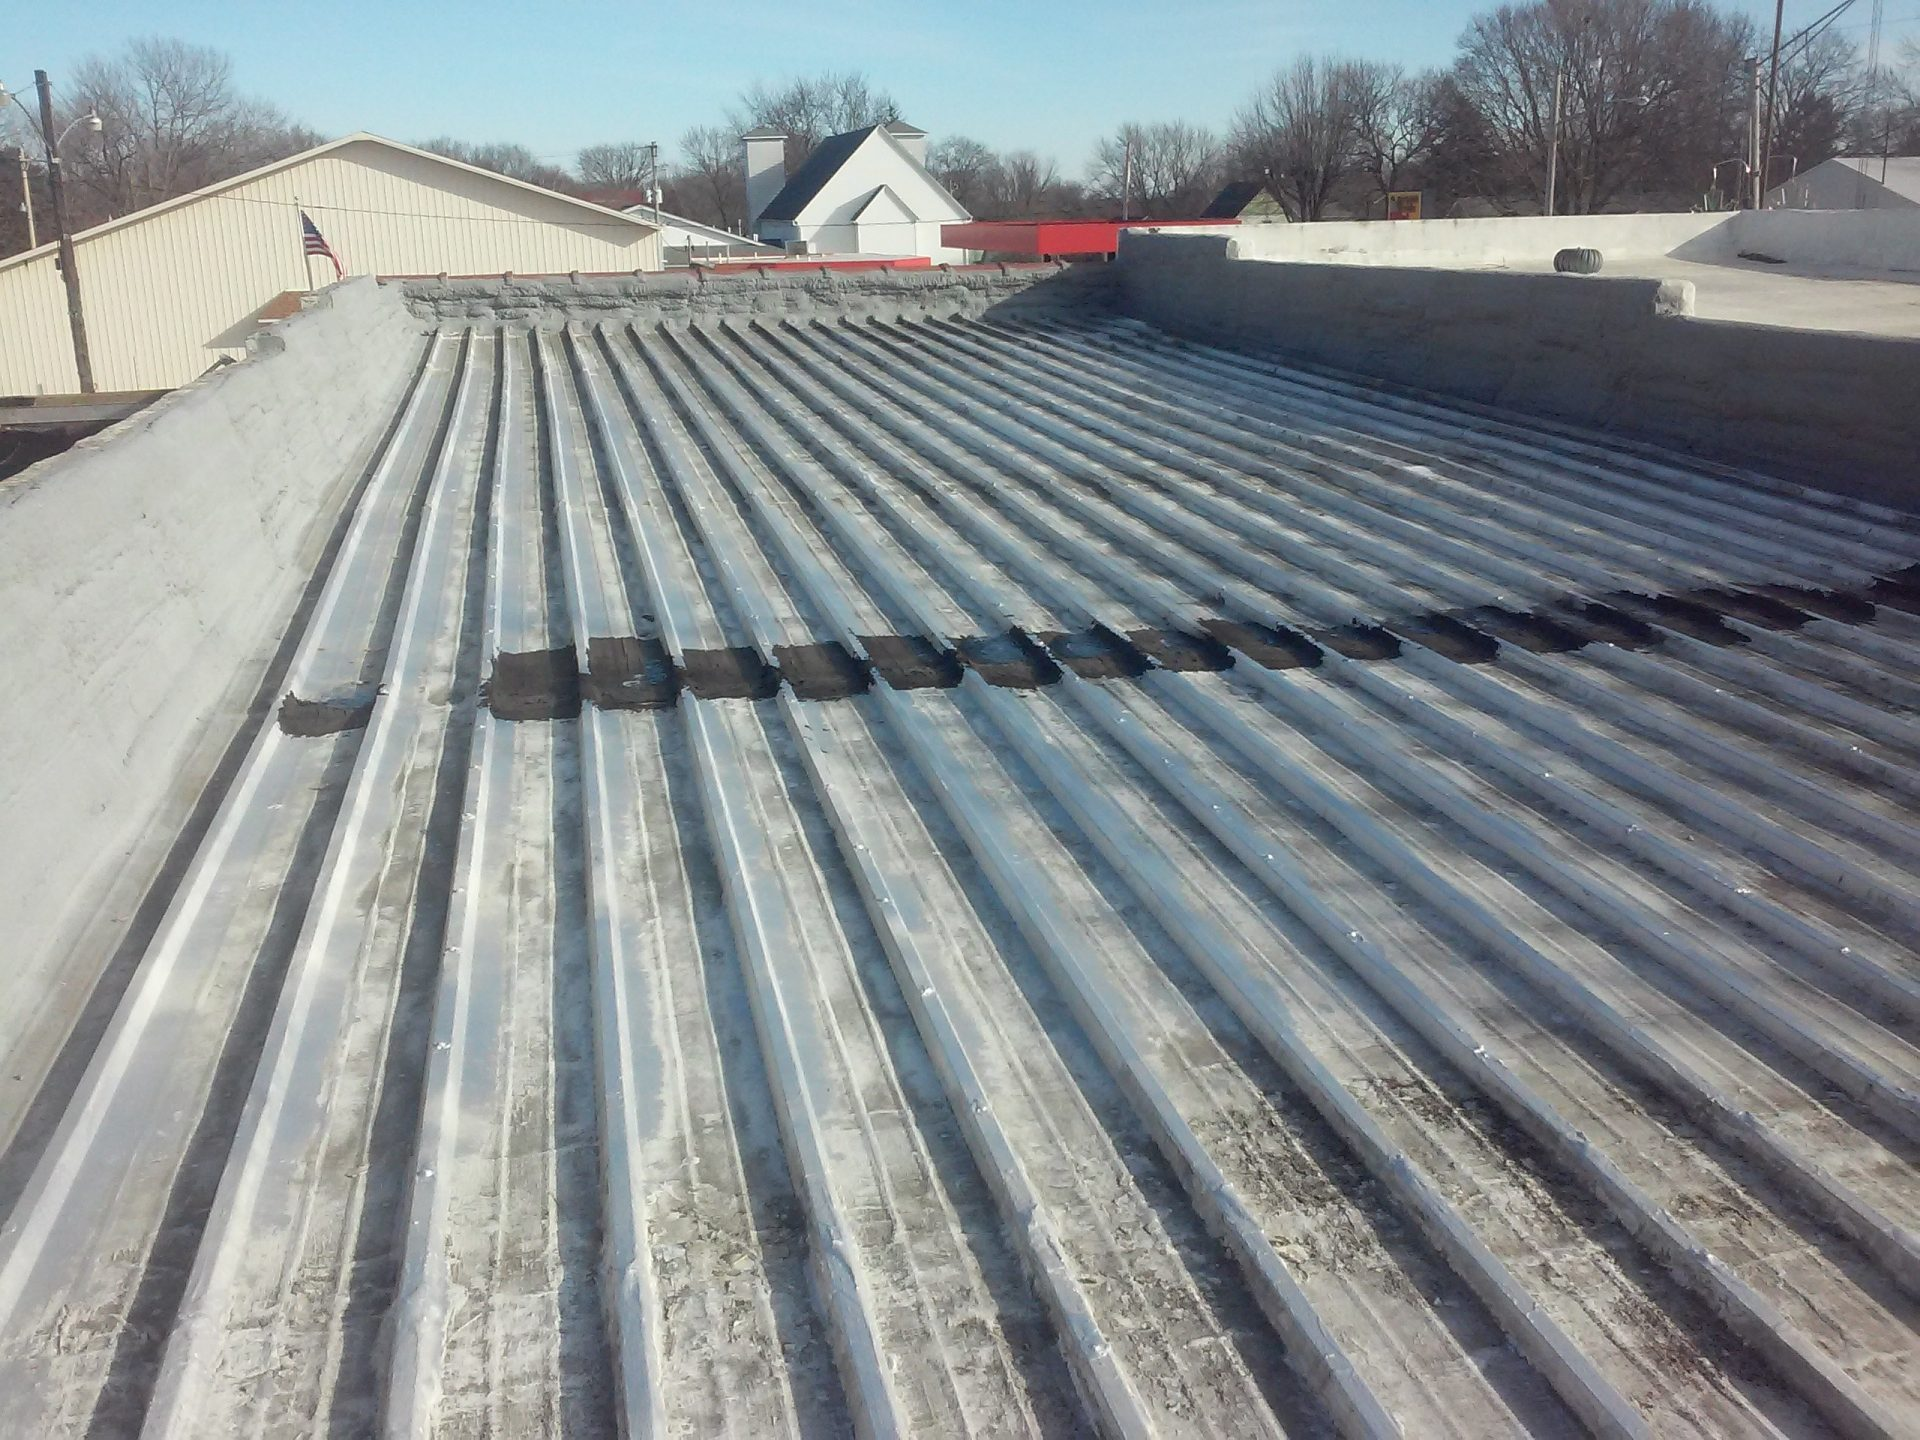 commercial roof restoration in progress